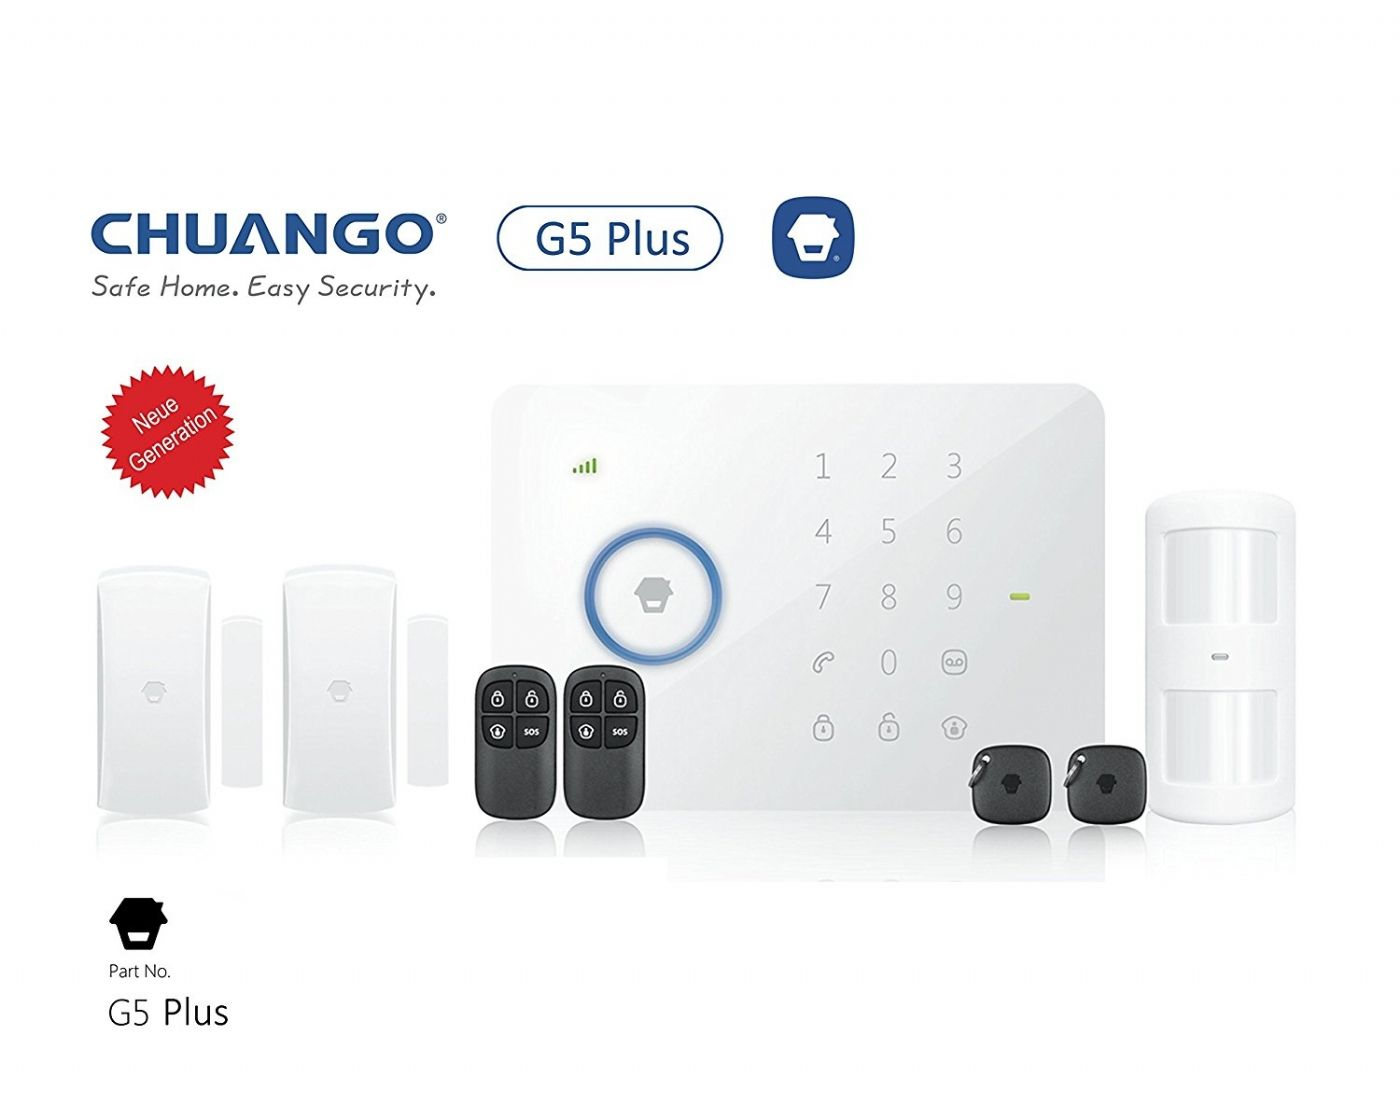 KIT SISTEMA DI ALLARME VIA RADIO APP SMARTPHONE GSM SMS WIRELESS CHUANGO G5 PLUS